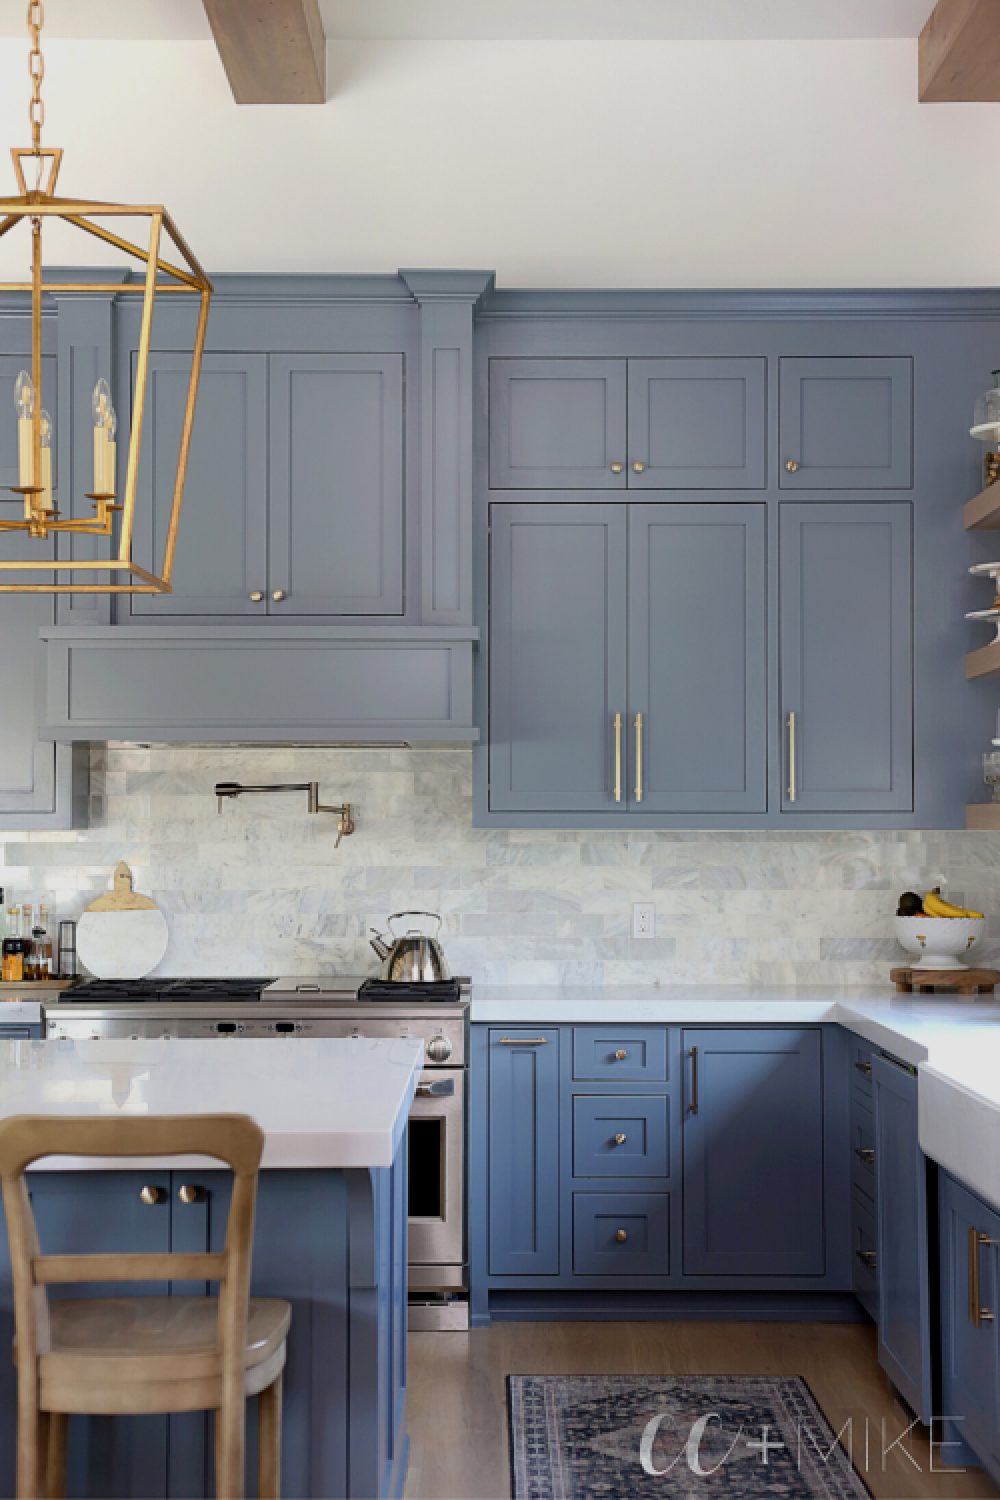 53 Frisco Project Reveal In 2020 Diy Kitchen Renovation Painted Kitchen Cabinets Colors Kitchen Cabinet Colors